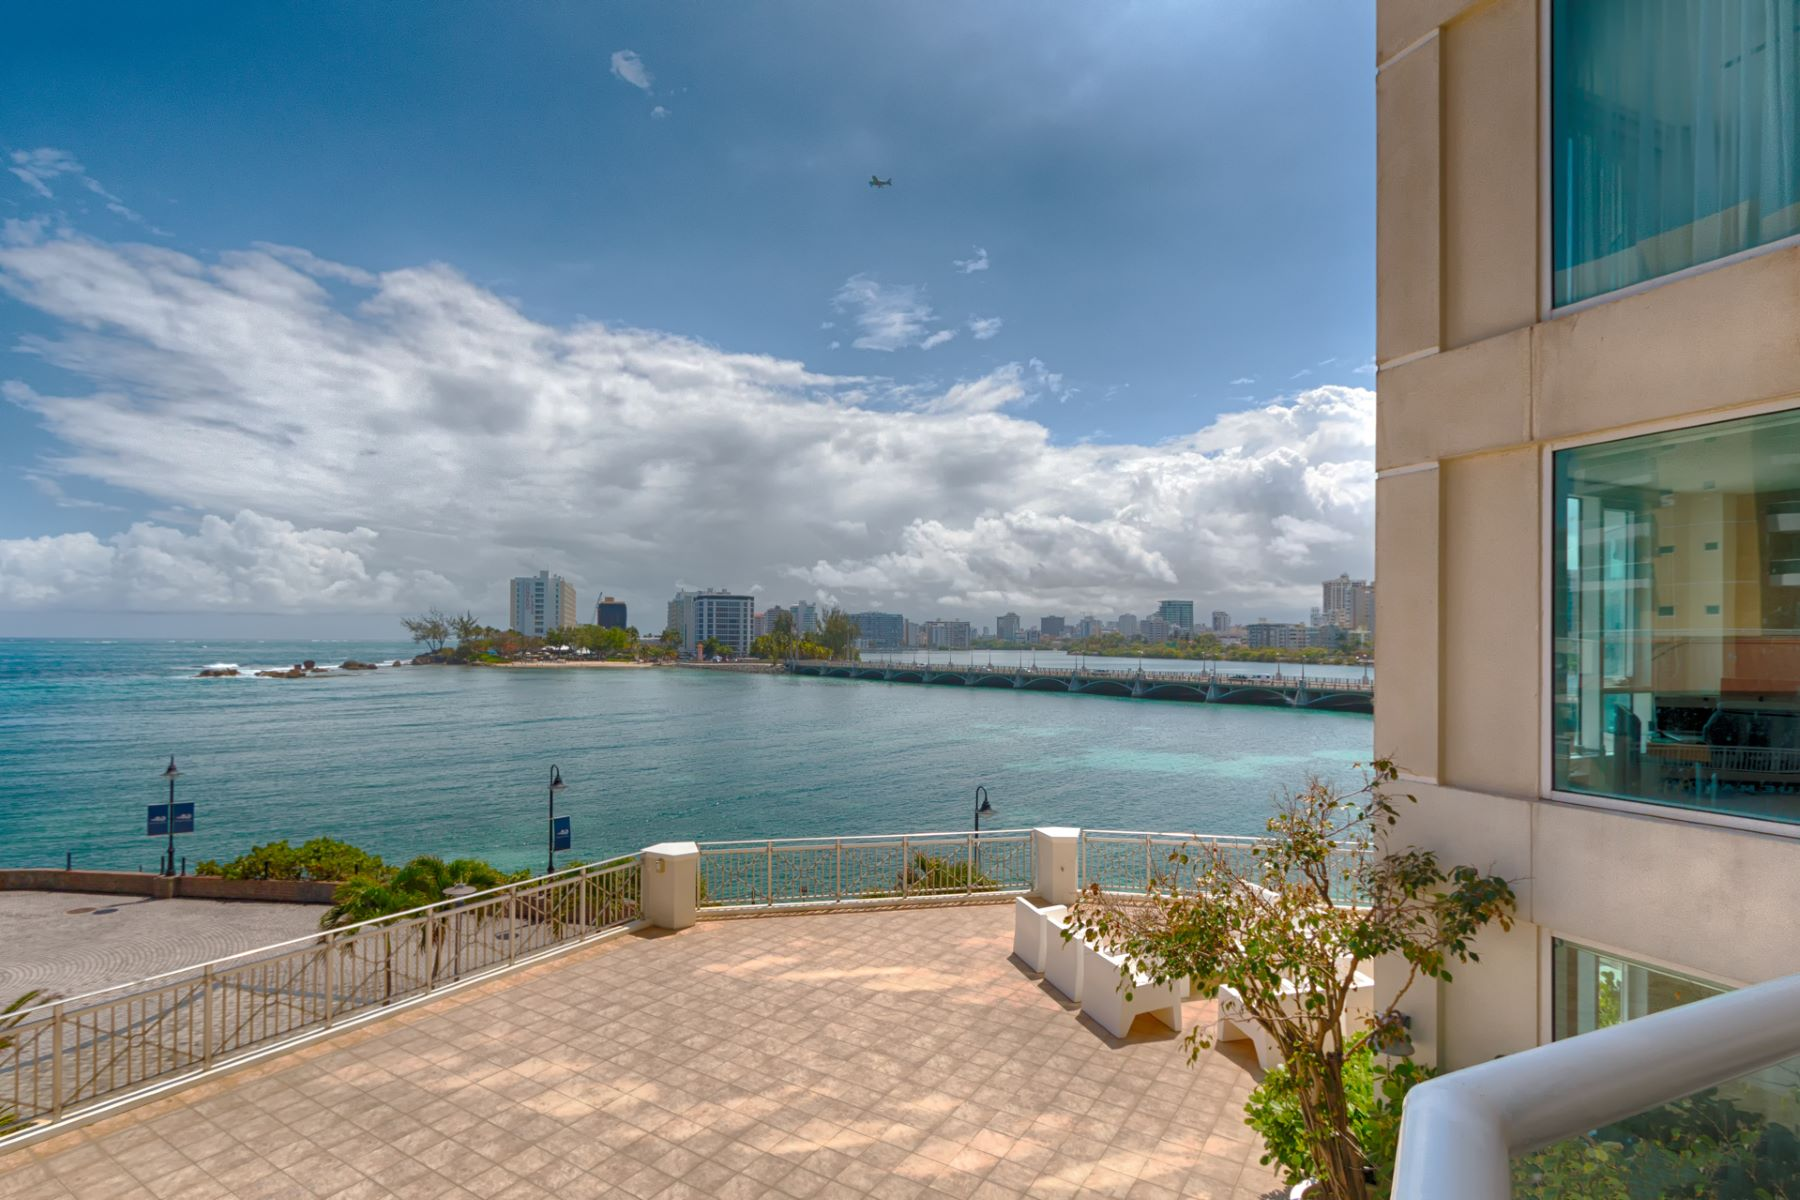 Additional photo for property listing at Laguna Plaza Waterfront 6 Muñoz Rivera Avenue, Apt 303 Laguna Plaza San Juan, Puerto Rico 00902 プエルトリコ